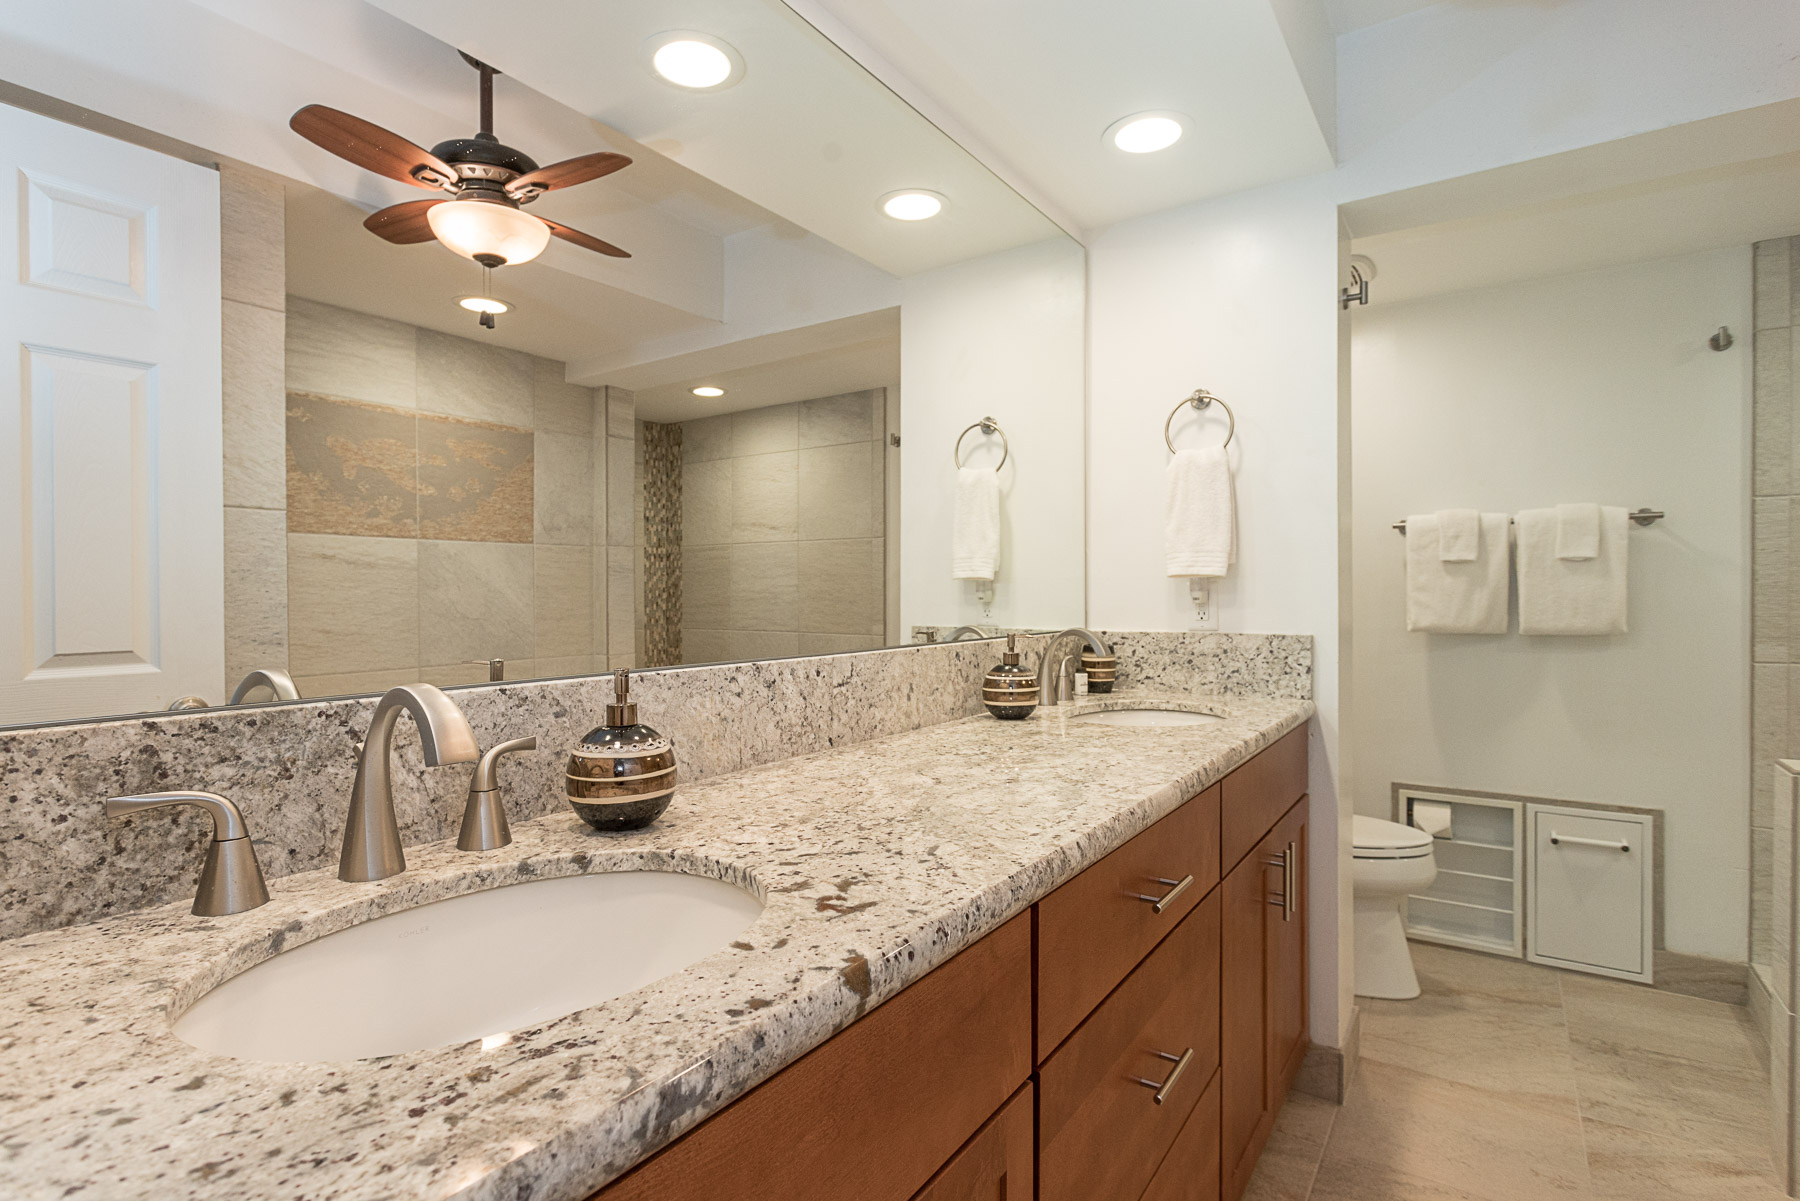 Master ensuite bathroom with double sinks